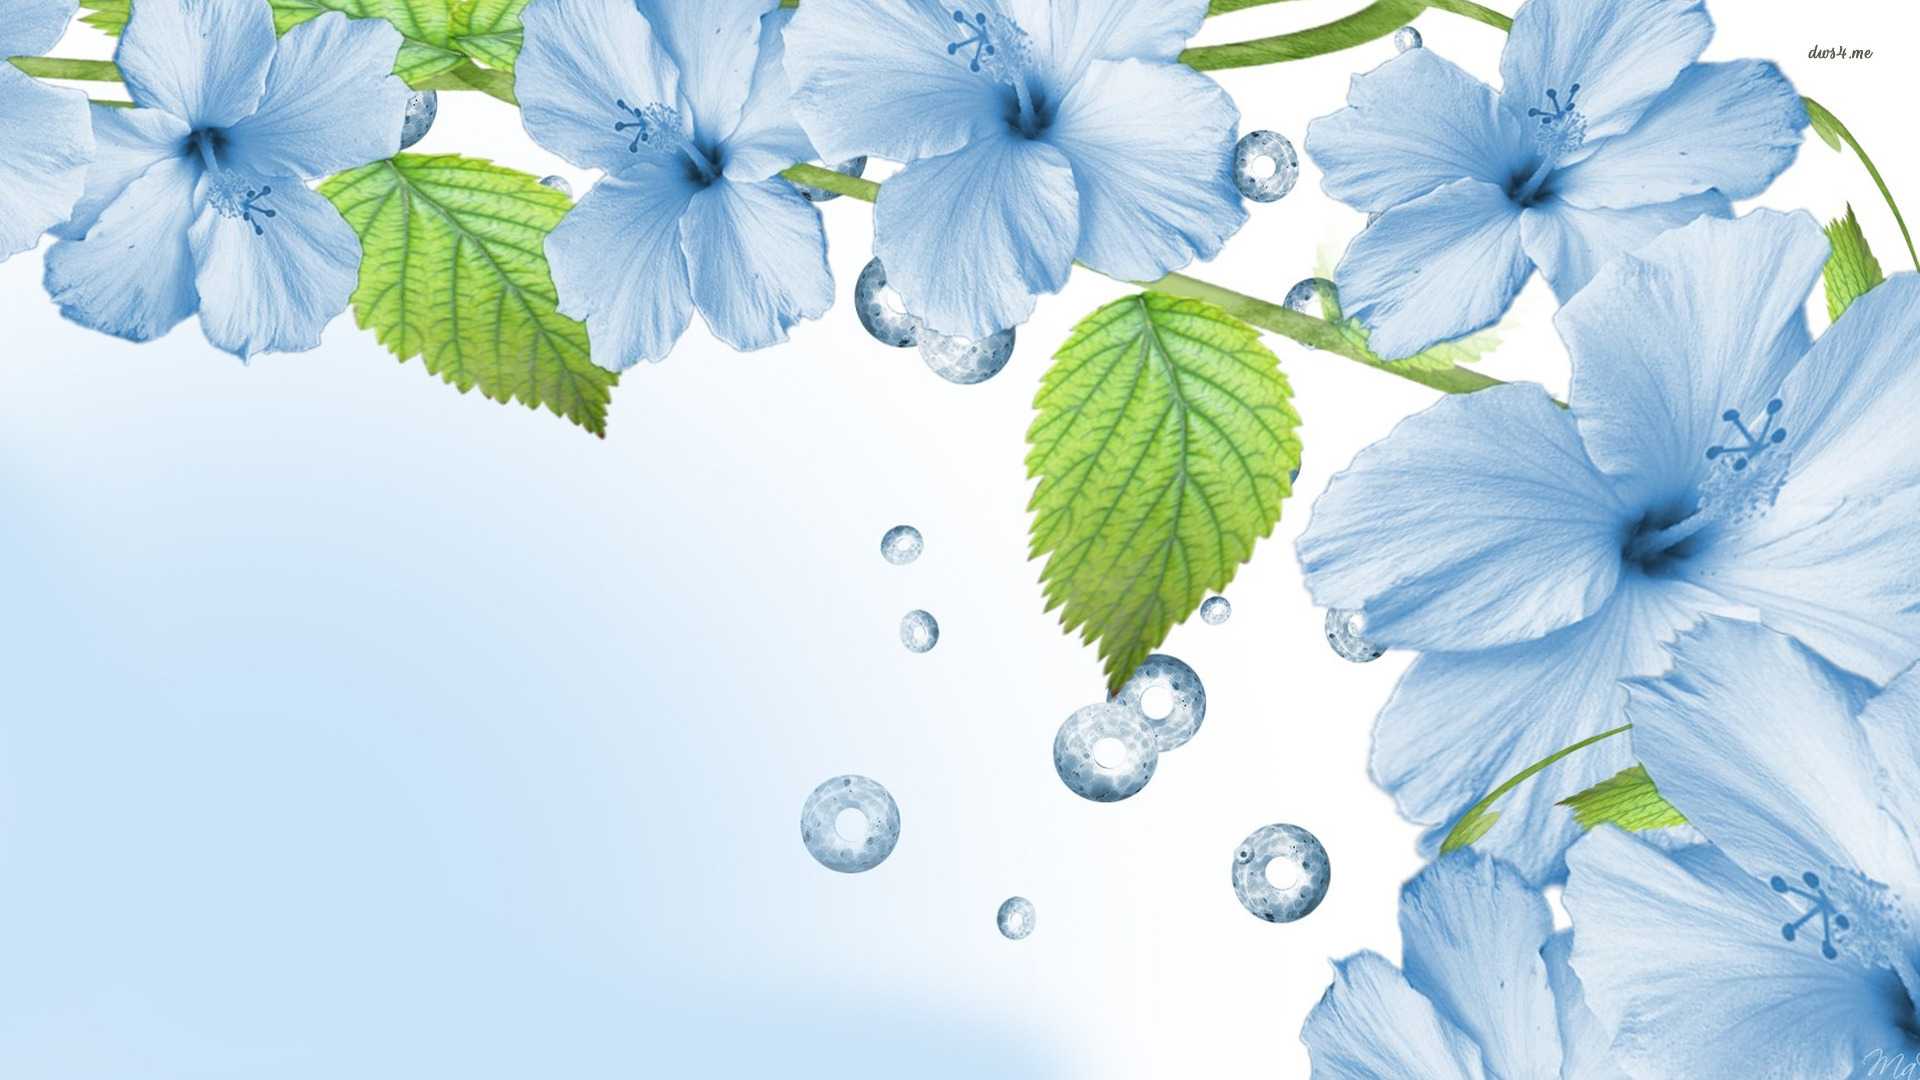 Wallpaper Blue Flowers Posted By John Cunningham